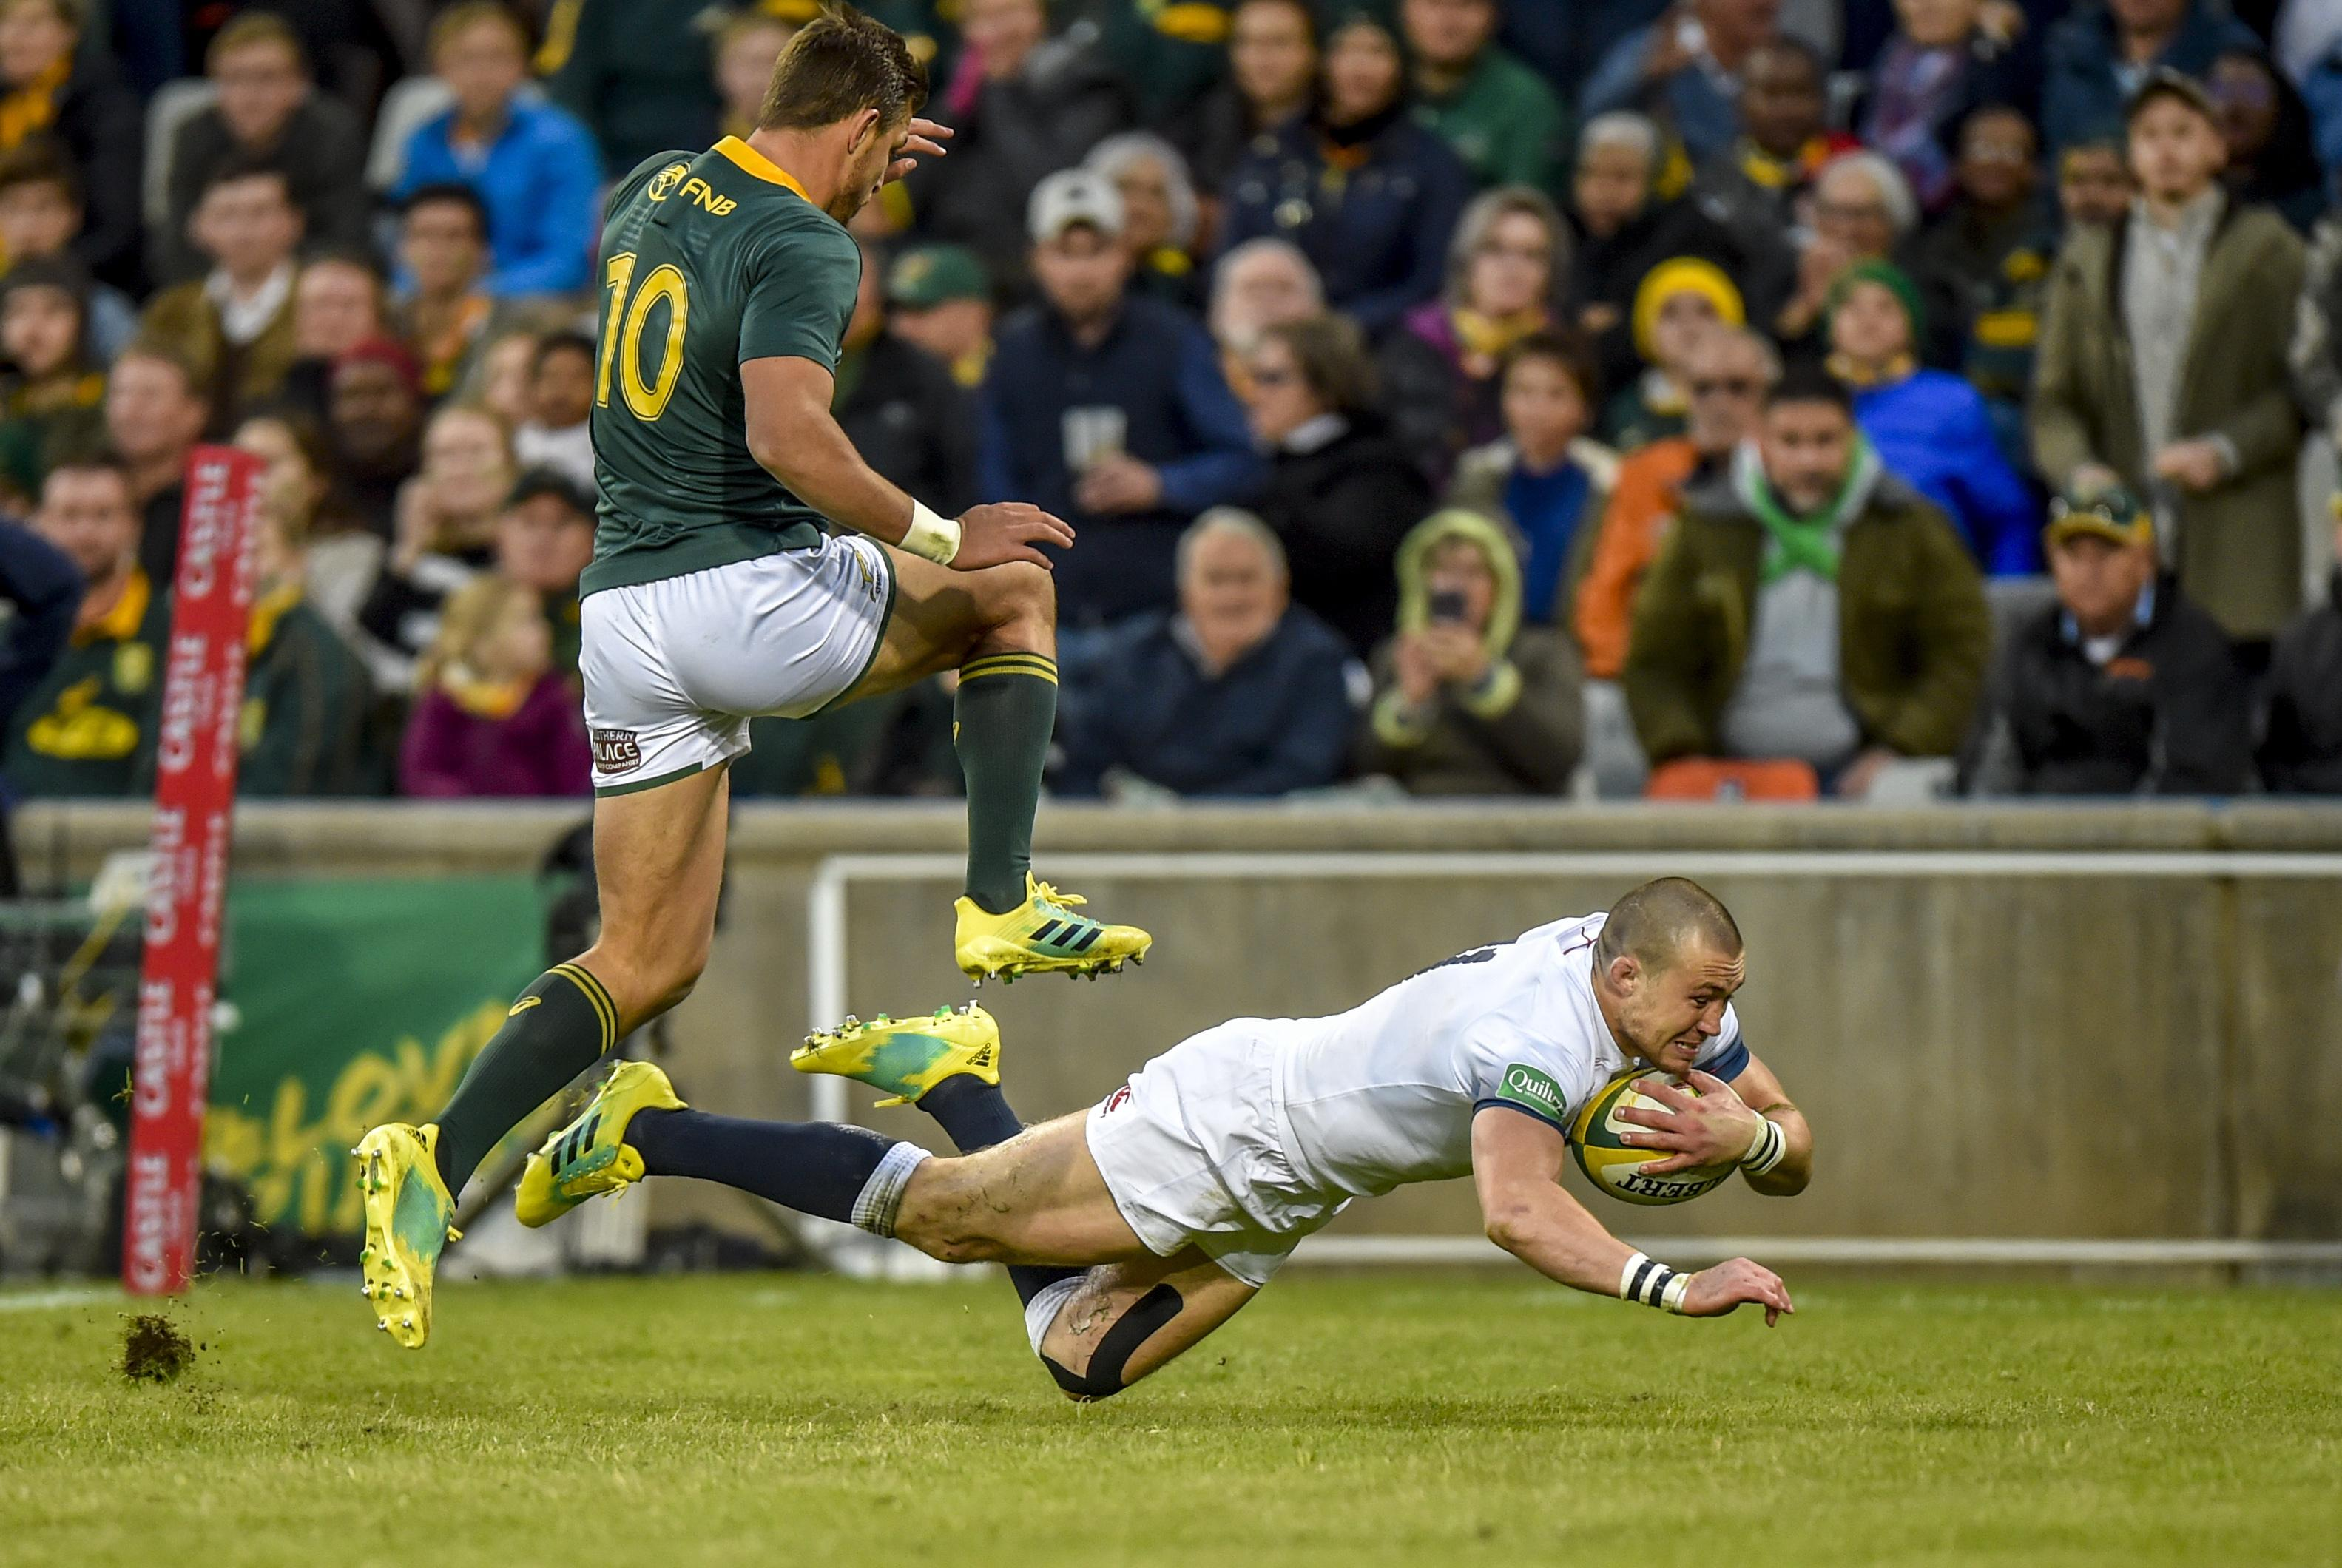 Brown, 32, scored a try during the recent 23-12 defeat against South Africa